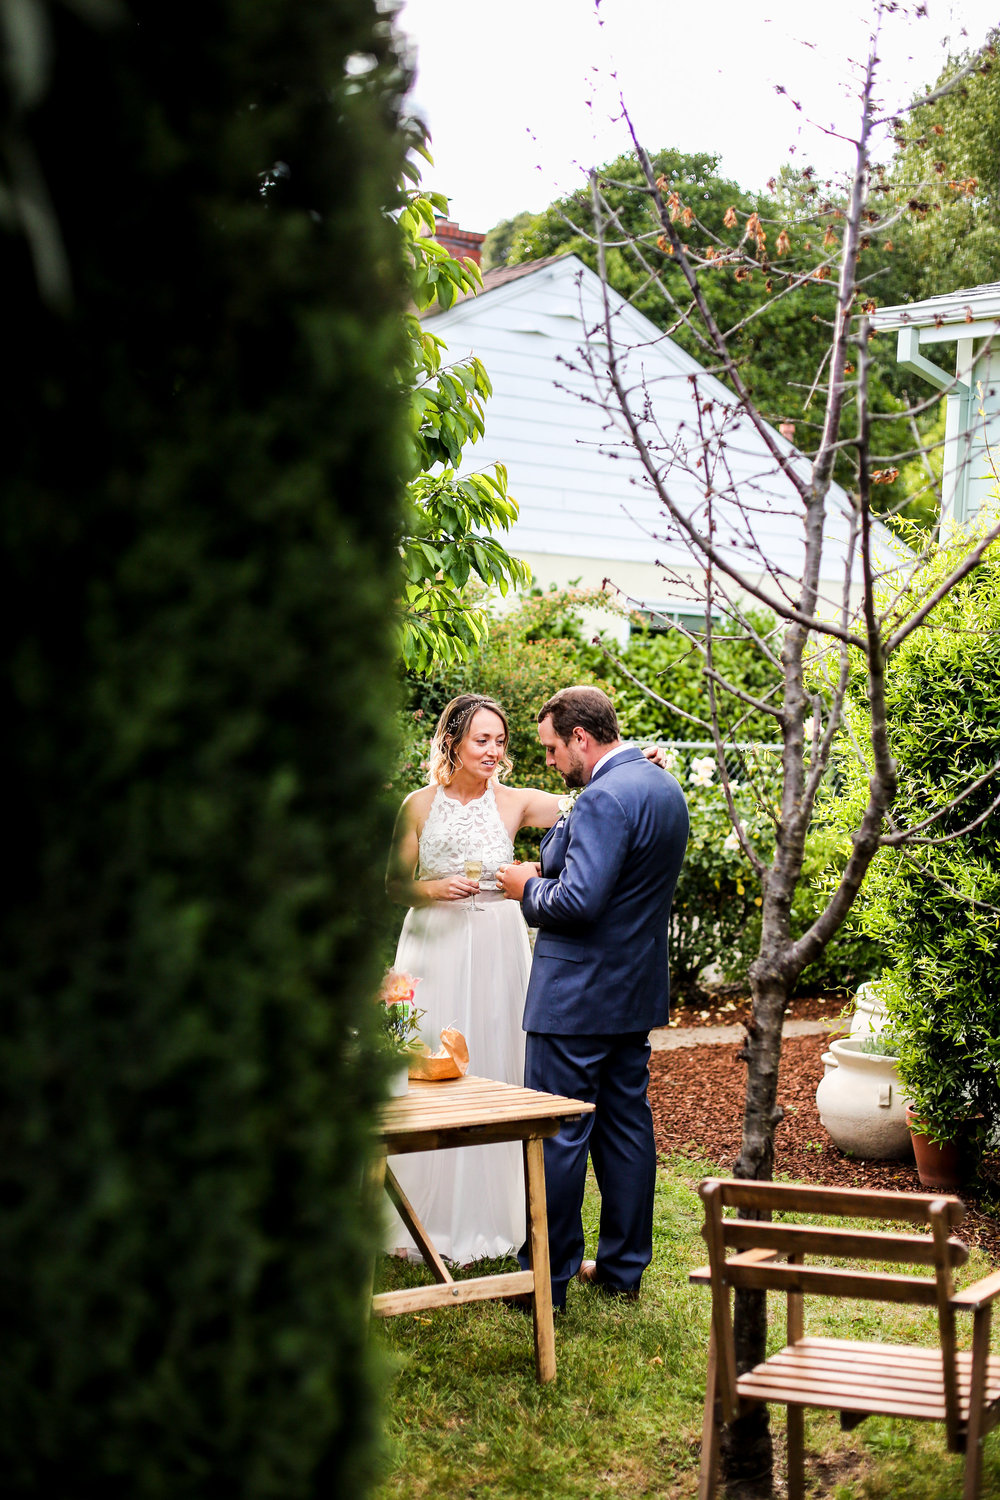 AllisonandScott'sApril2016Wedding-528.jpg